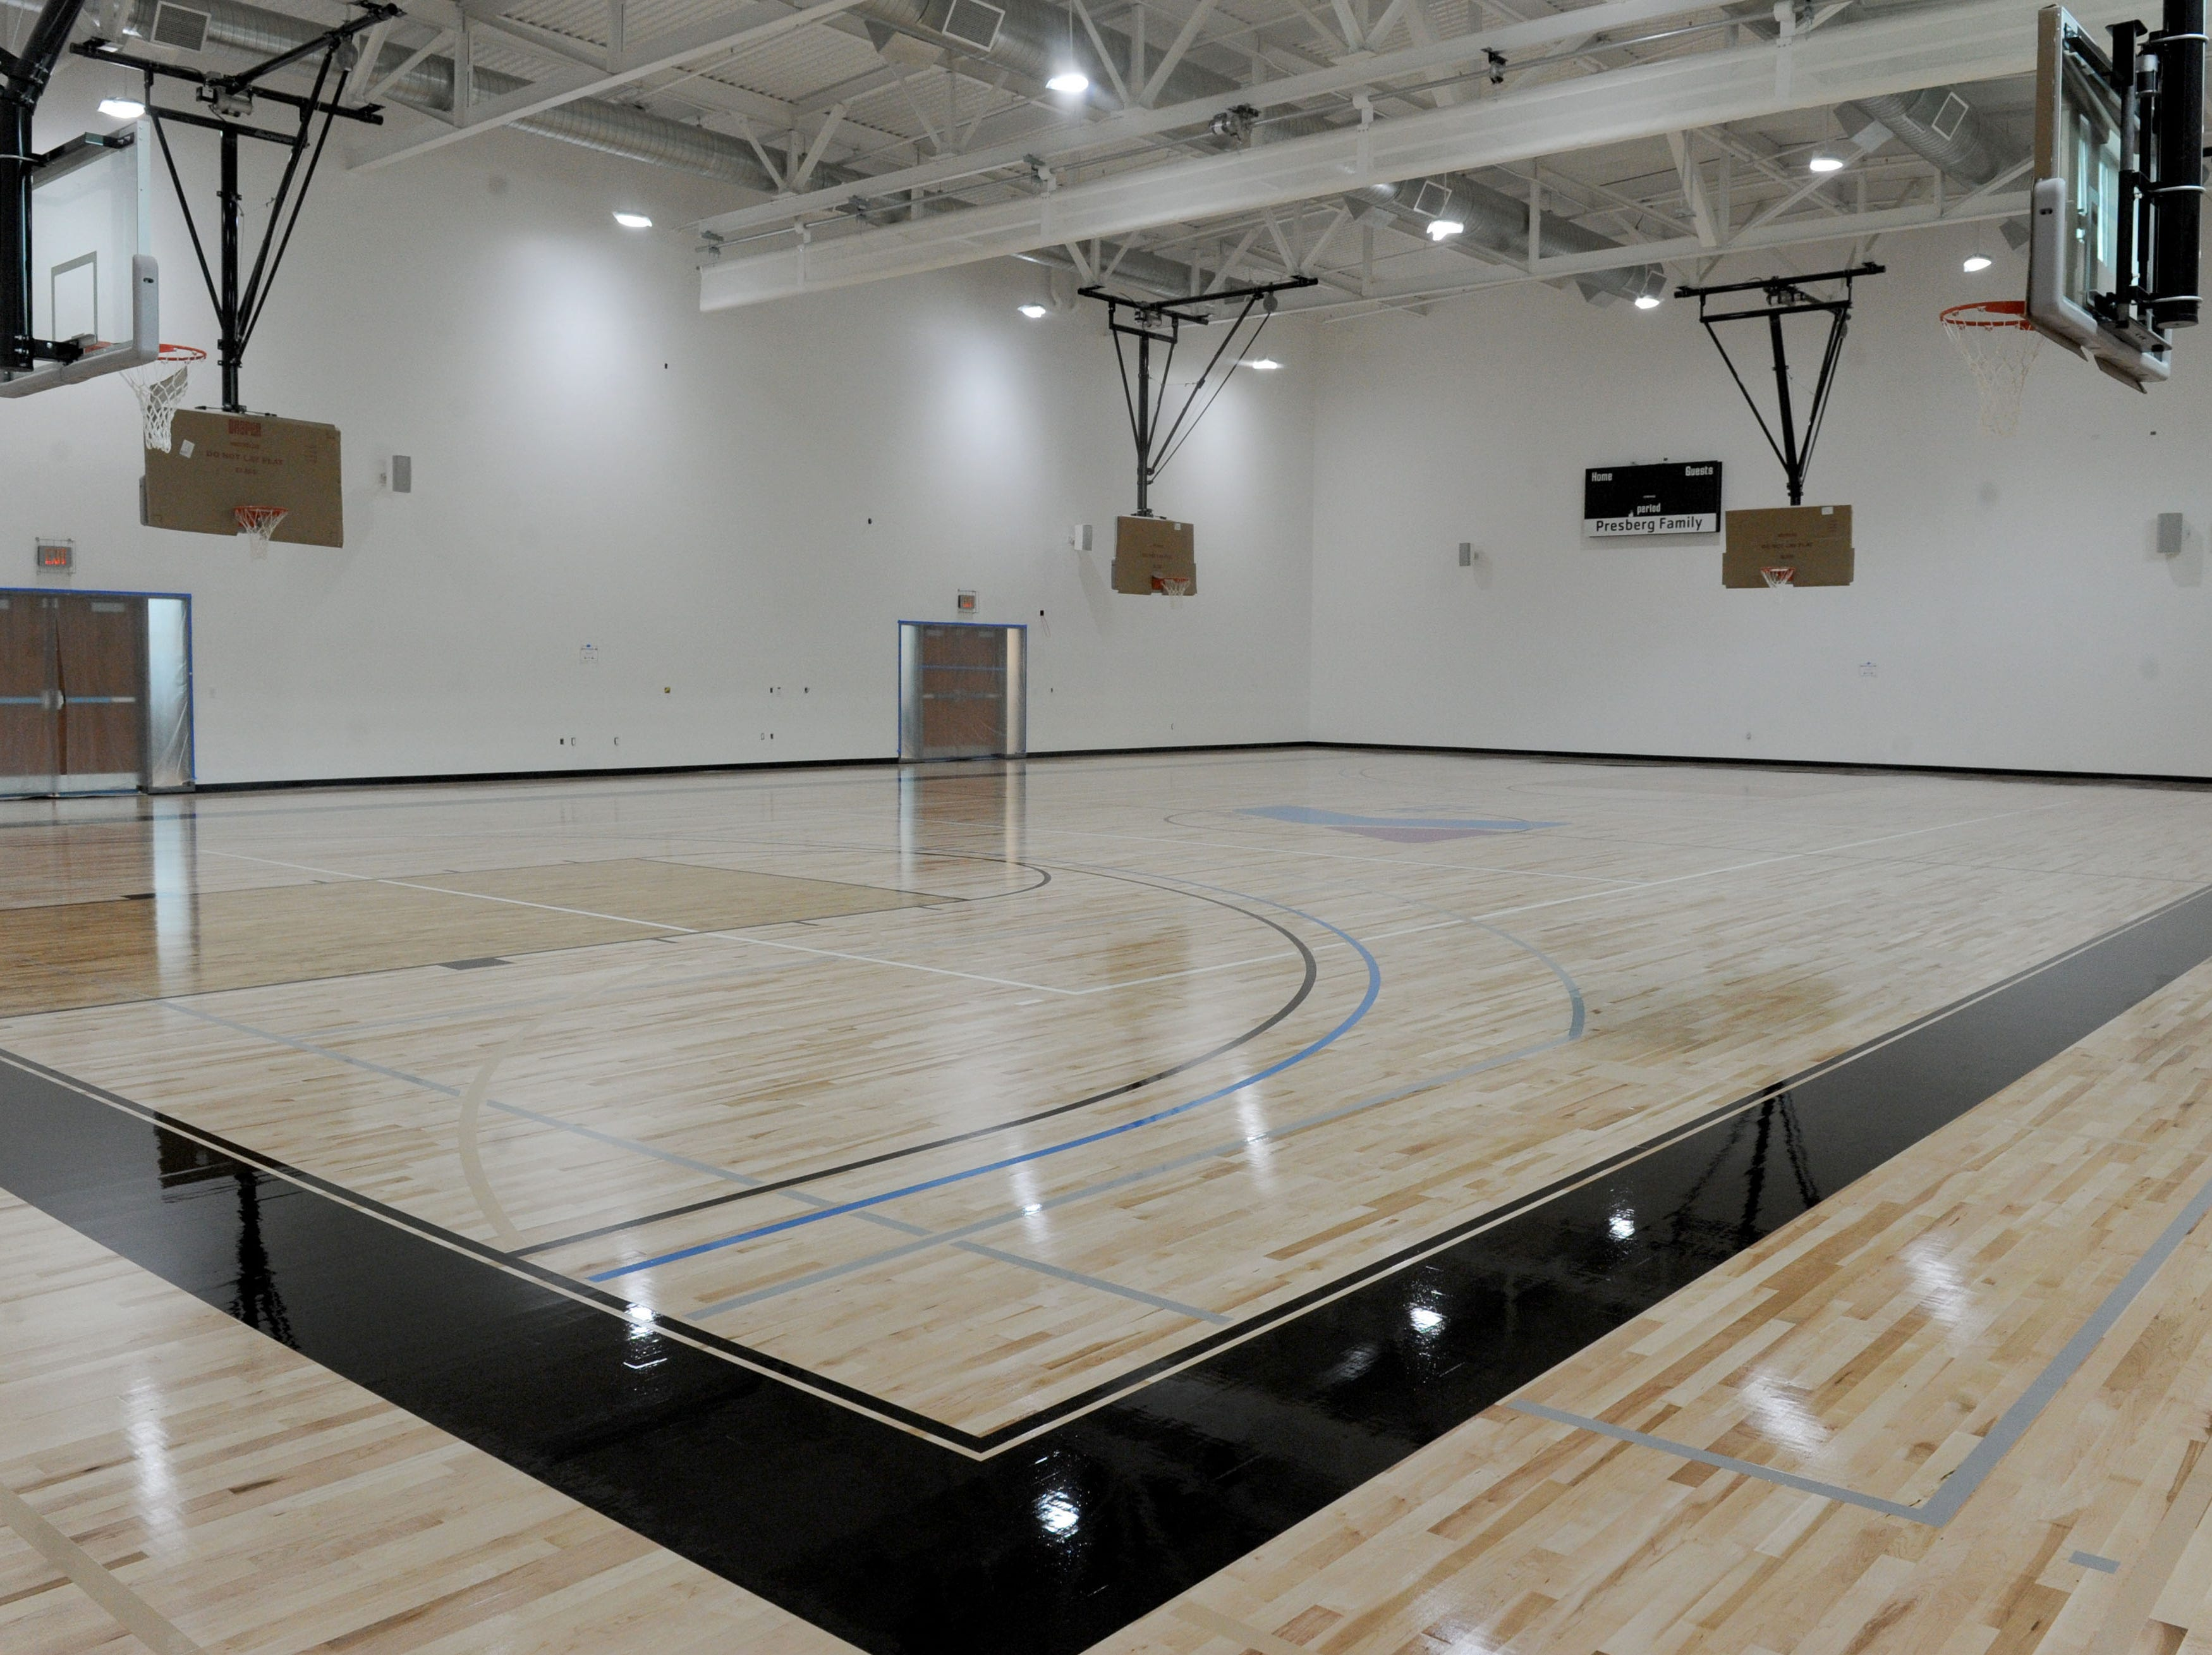 The basketball court at the new Yarrow Family YMCA in Westlake Village. The facility's grand opening is April 27.